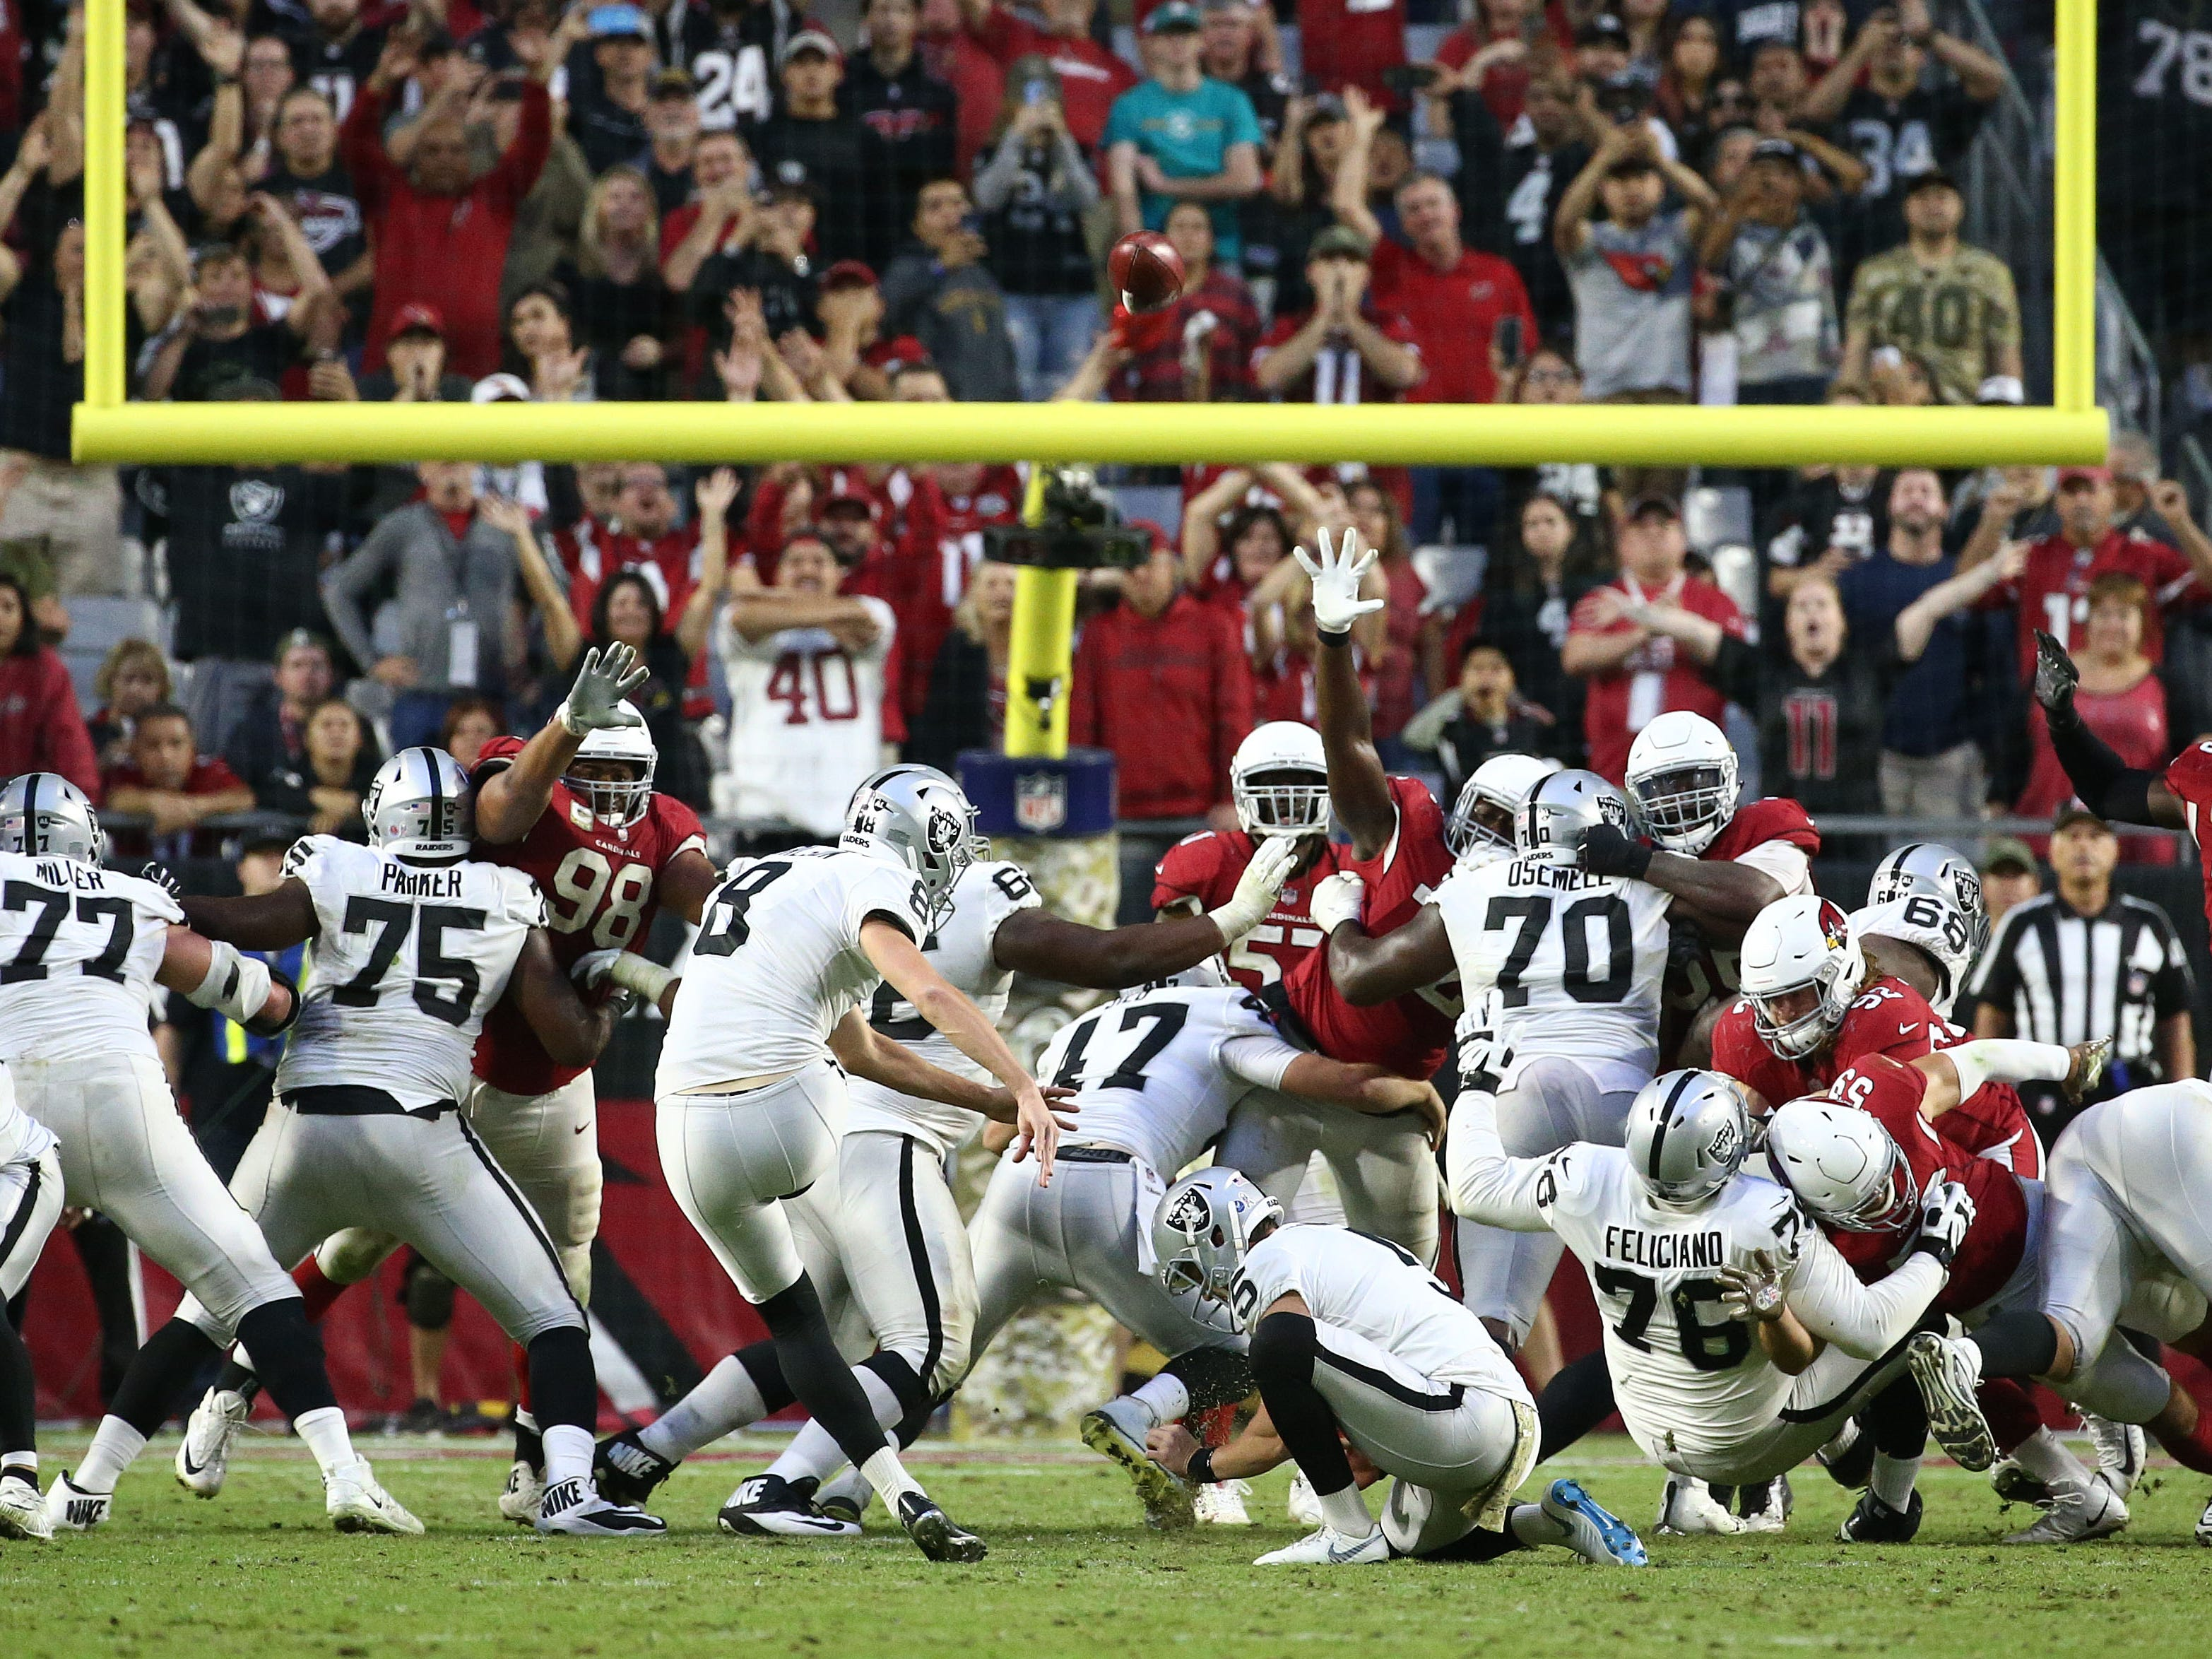 Oakland Raiders' Daniel Carlson (8) kicks a game winning field goal to end the game against the Arizona Cardinals on Nov. 18 at State Farm Stadium.